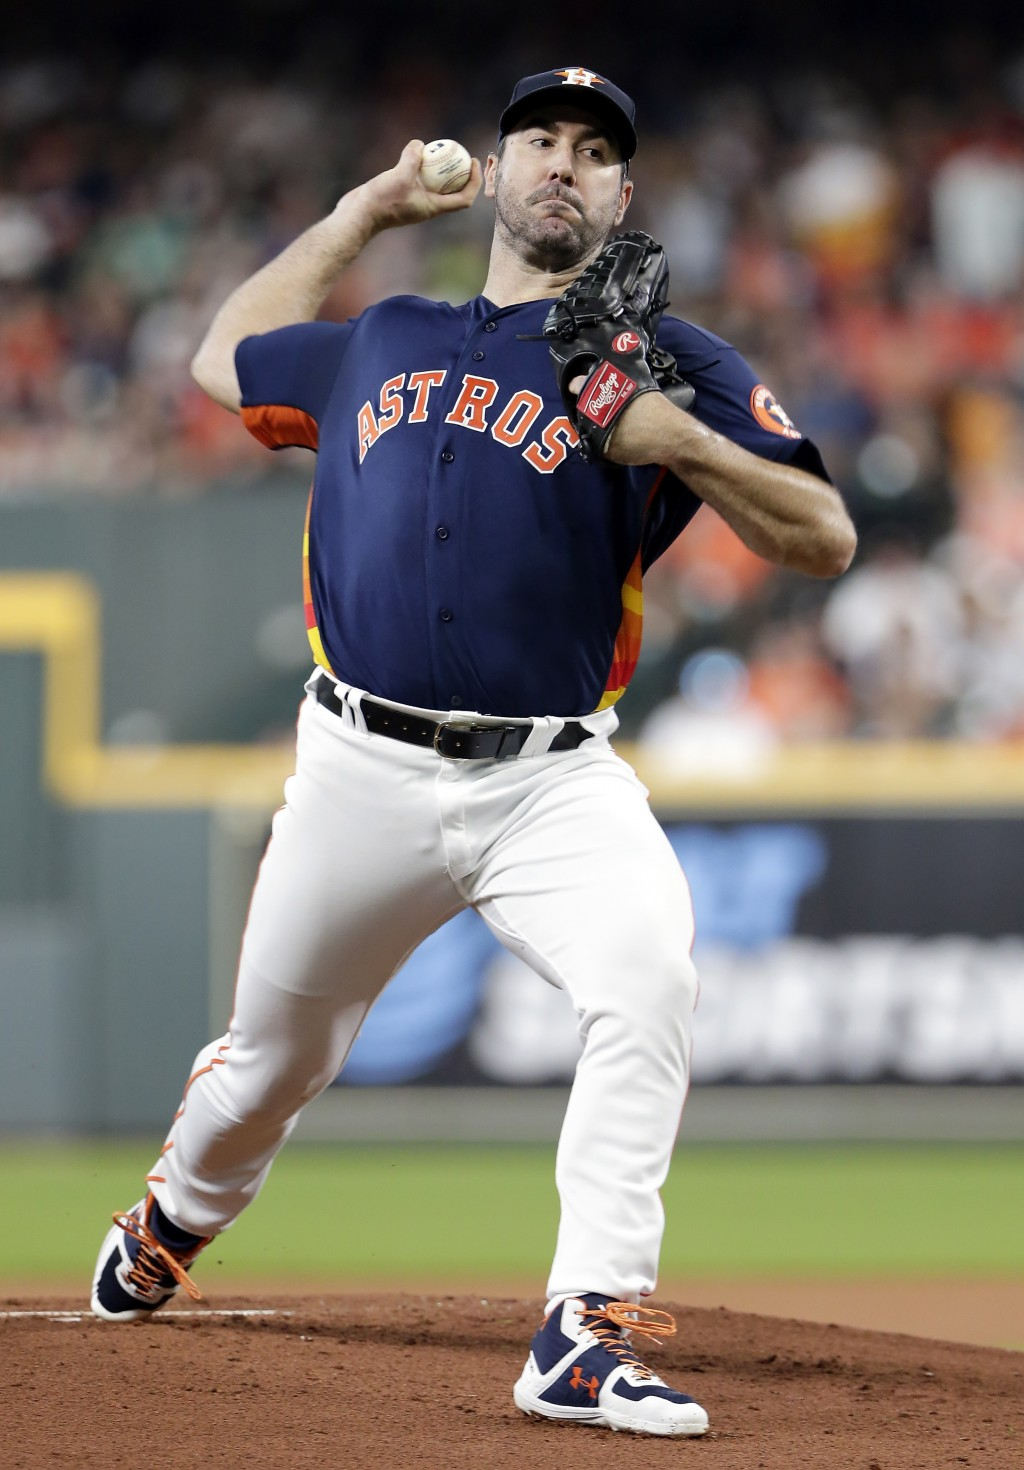 Houston Astros starting pitcher Justin Verlander throws during the first inning of a baseball game against the Seattle Mariners, Sunday, Aug. 4, 2019,